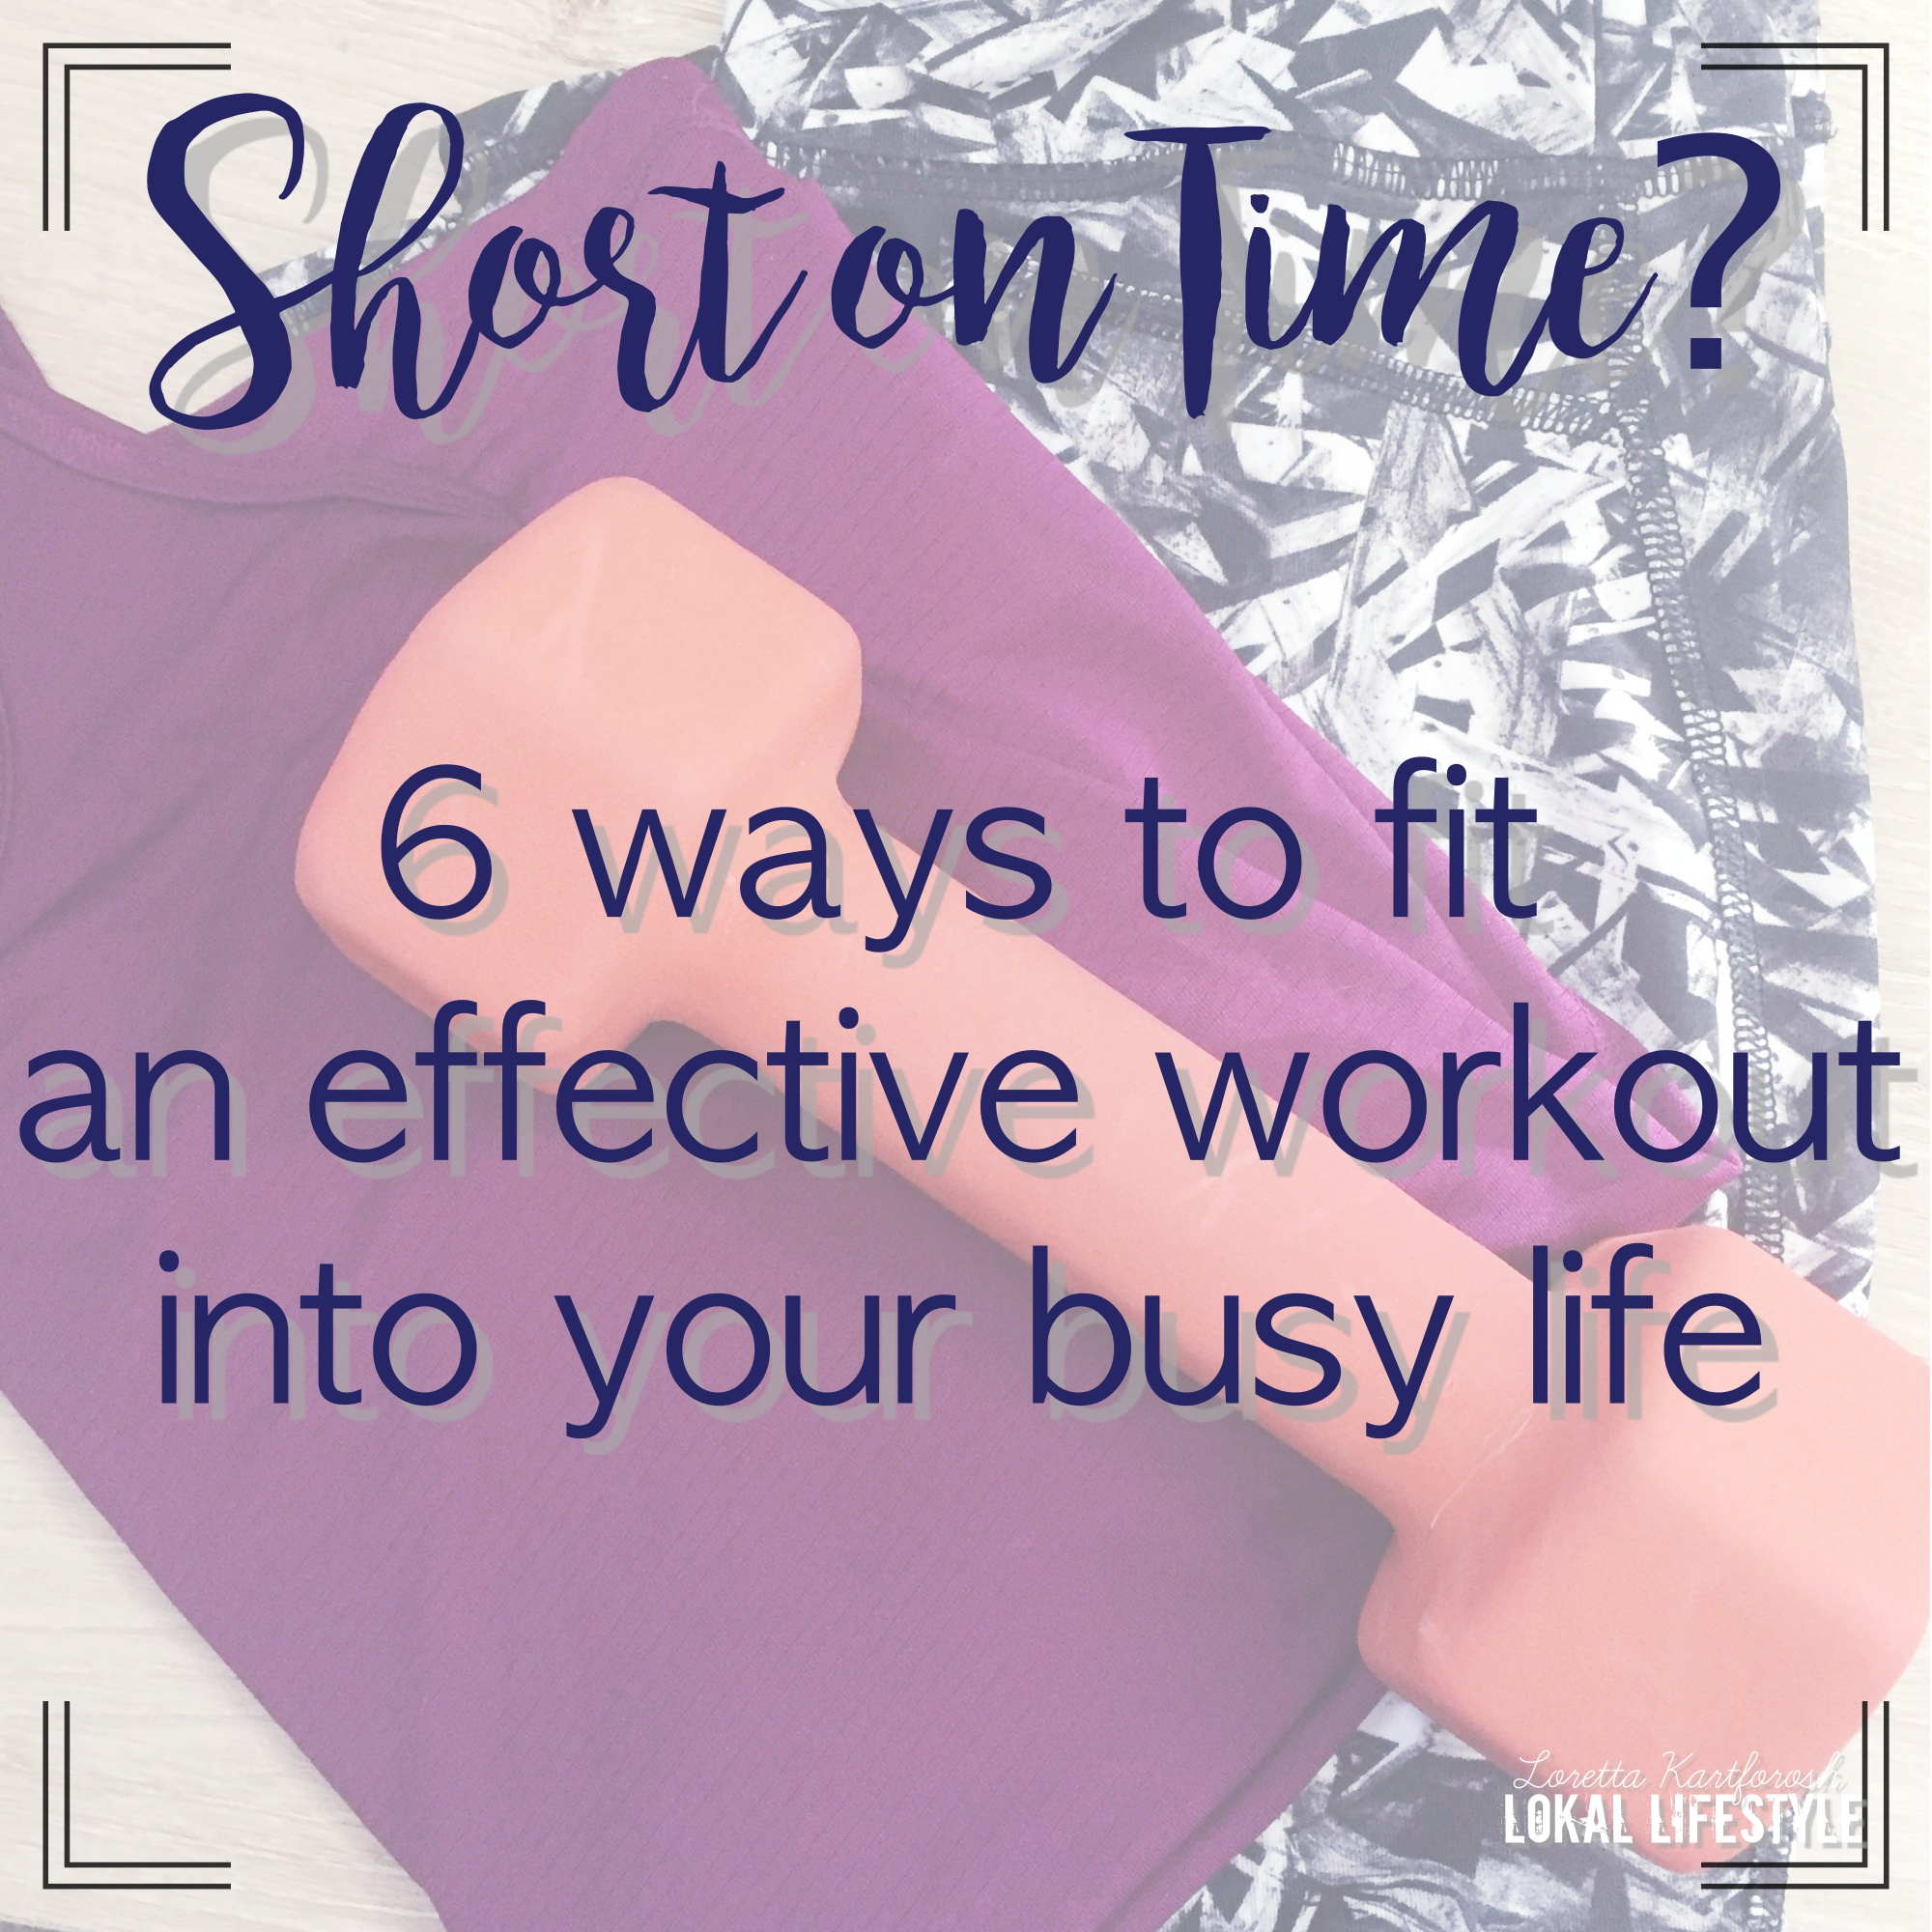 6 ways to fit an effective workout into your busy life